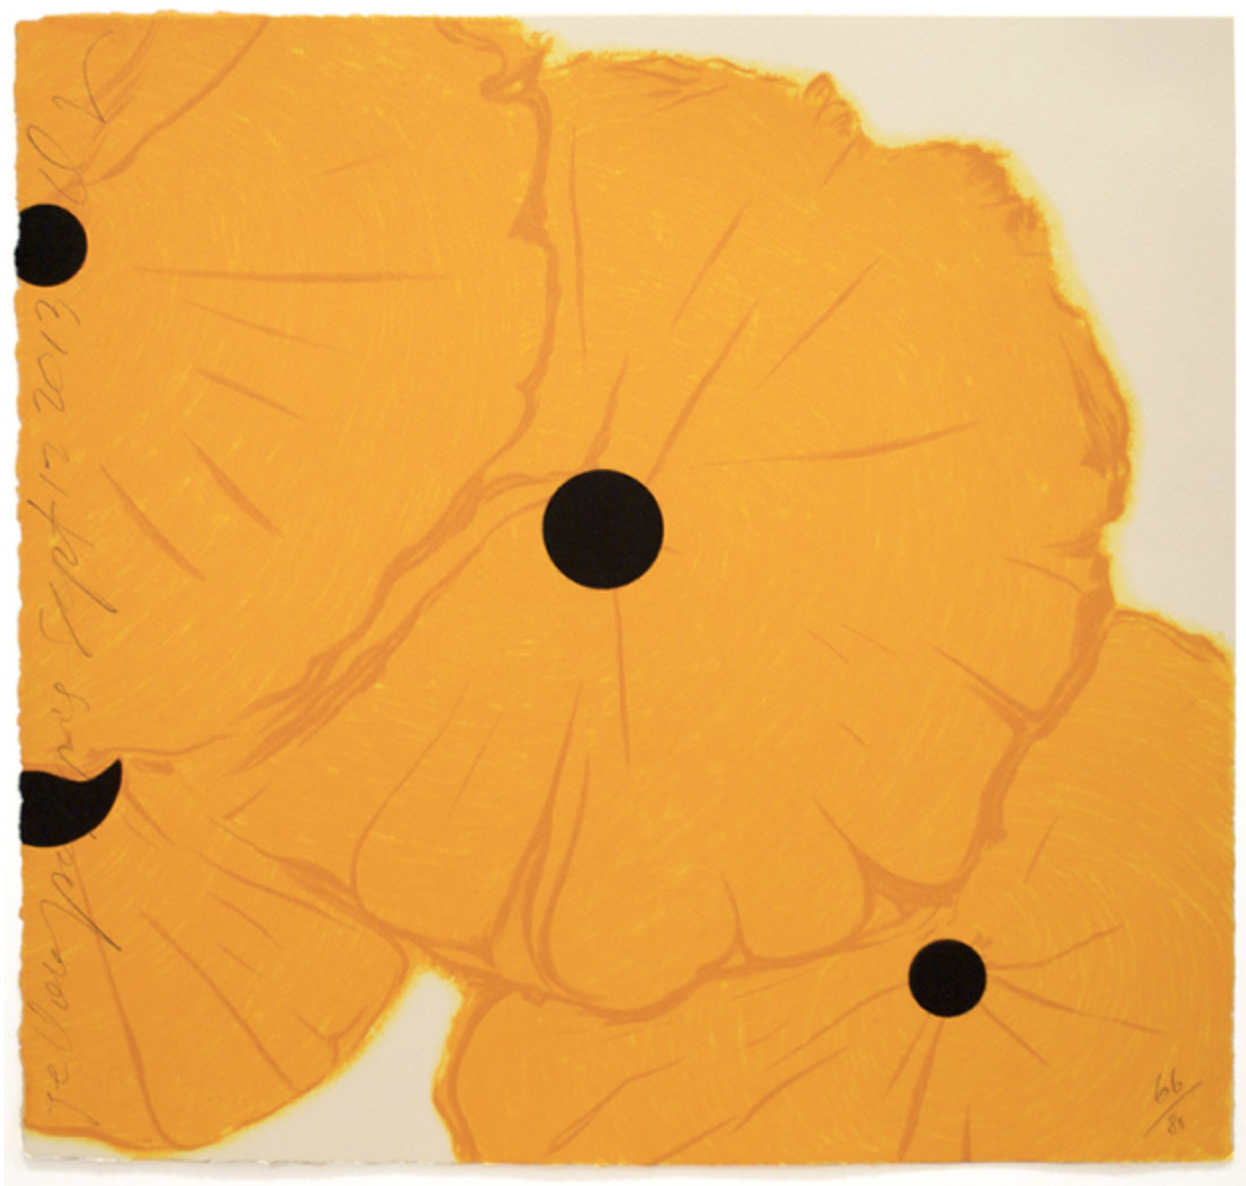 Donald Sultan  Yellow Poppies Sept. 12, 2013 , 2013 8 color screenprint with flocking 19 x 20 in.